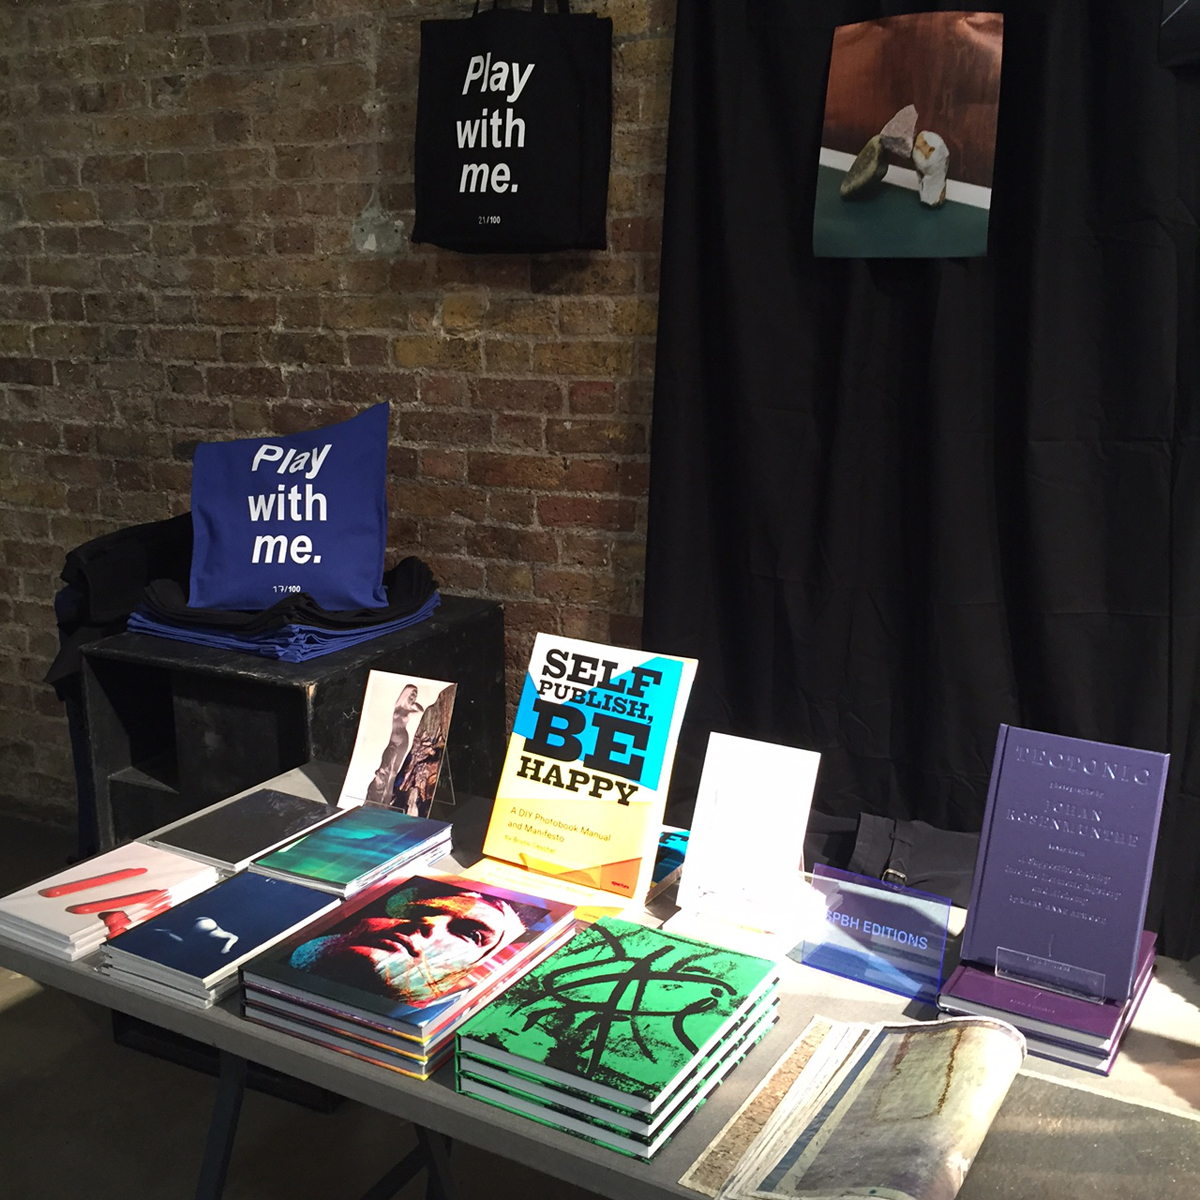 SPBH Editions stand